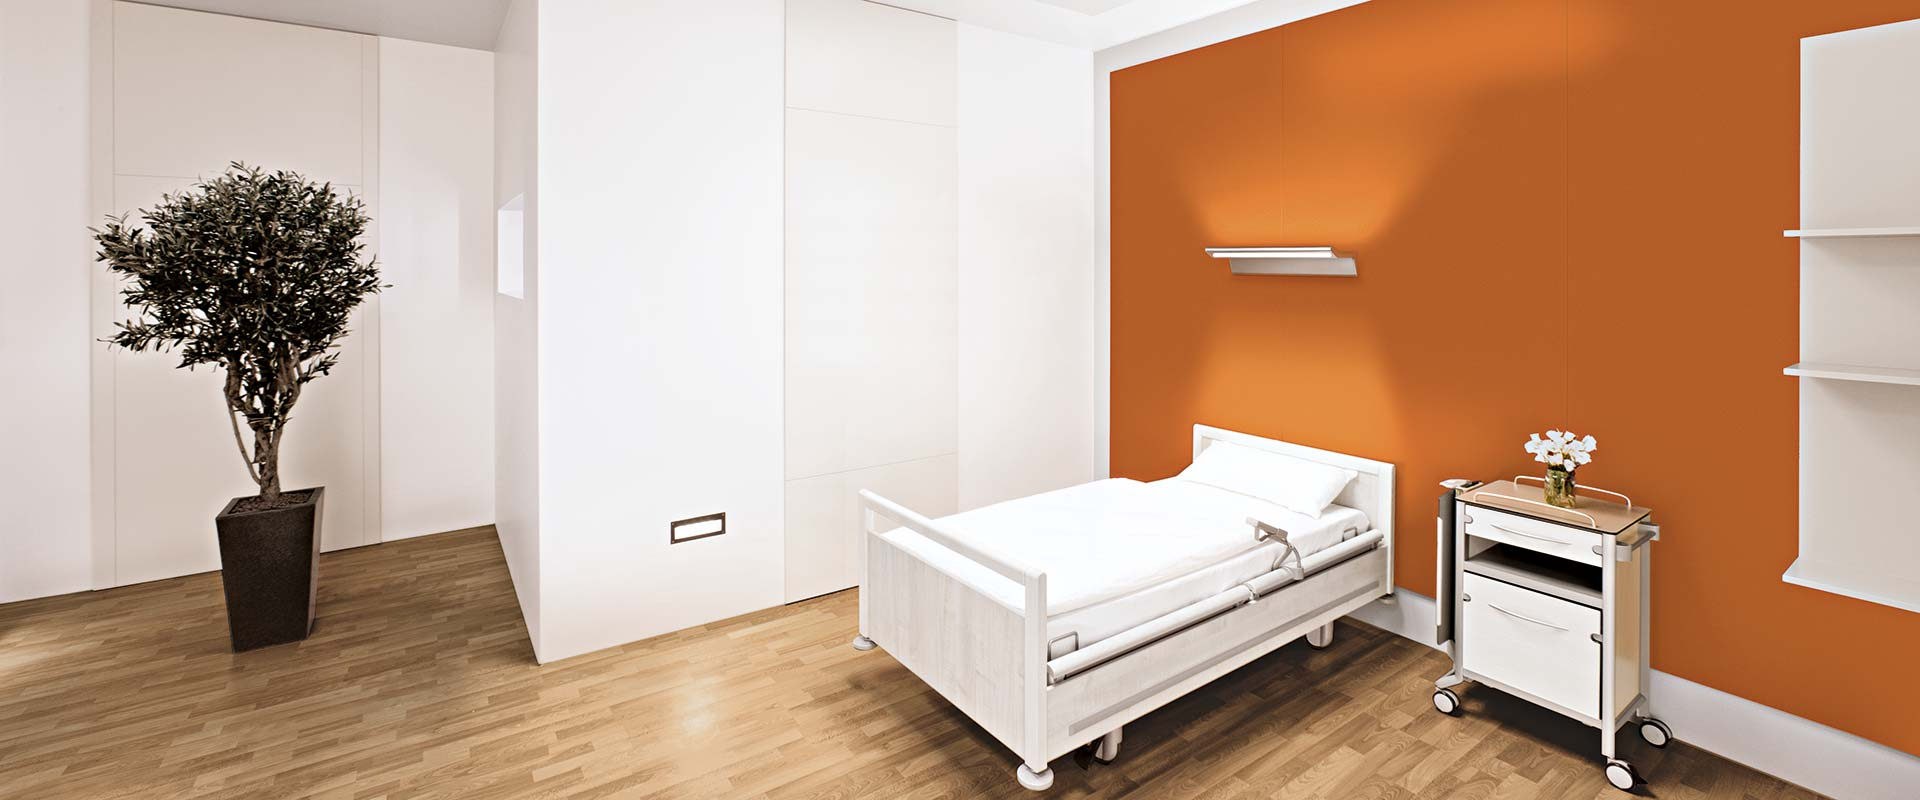 lighting in rooms interior led lighting for patient rooms medical by trilux